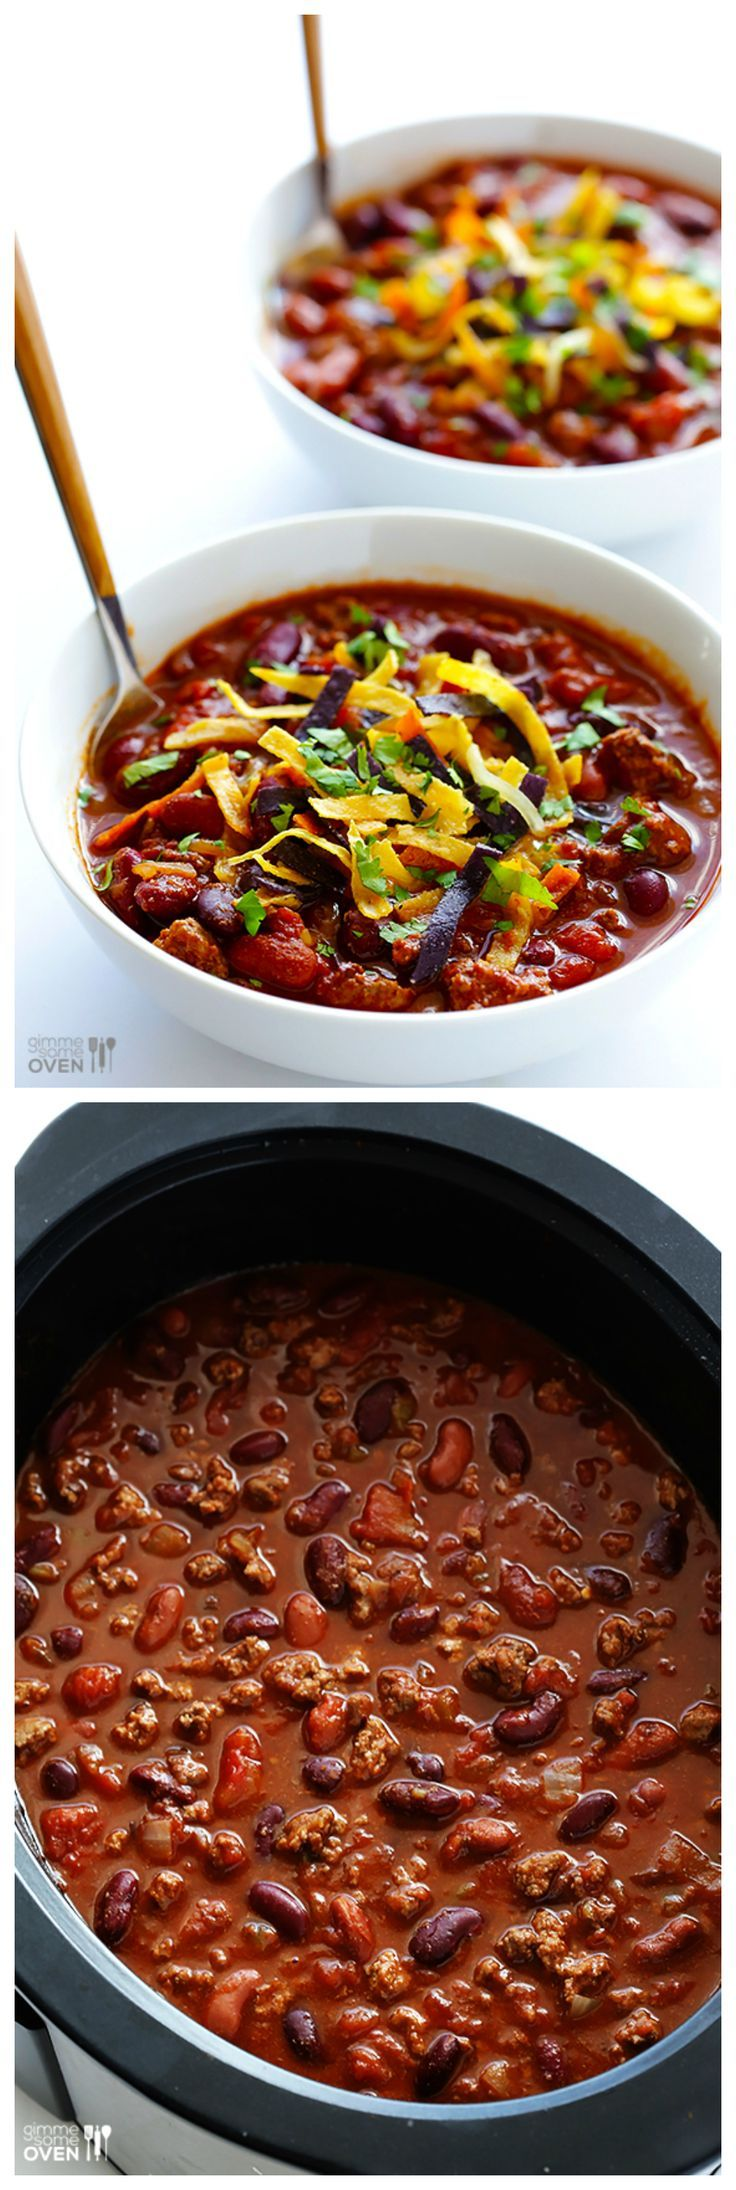 Slow Cooker Chili -- delicious, comforting classic chili made easy in the crock pot   gimmesomeoven.com